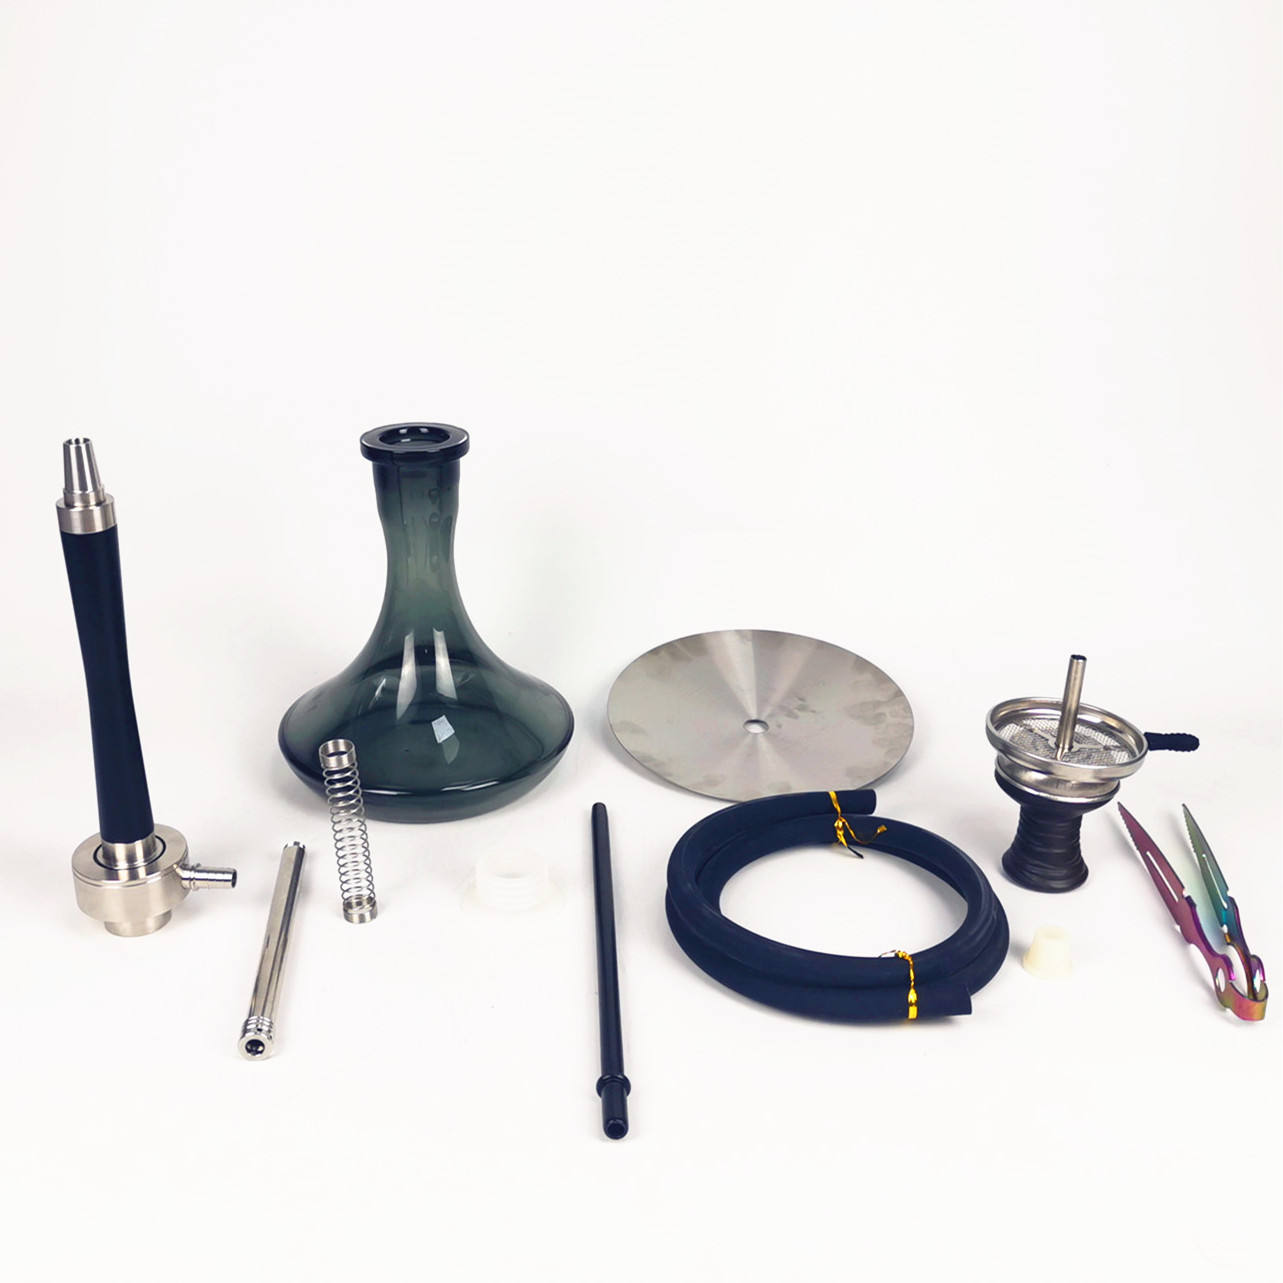 Factory Sales Directly Stainless Steel Hookah High Quality Russia Hookah Factory